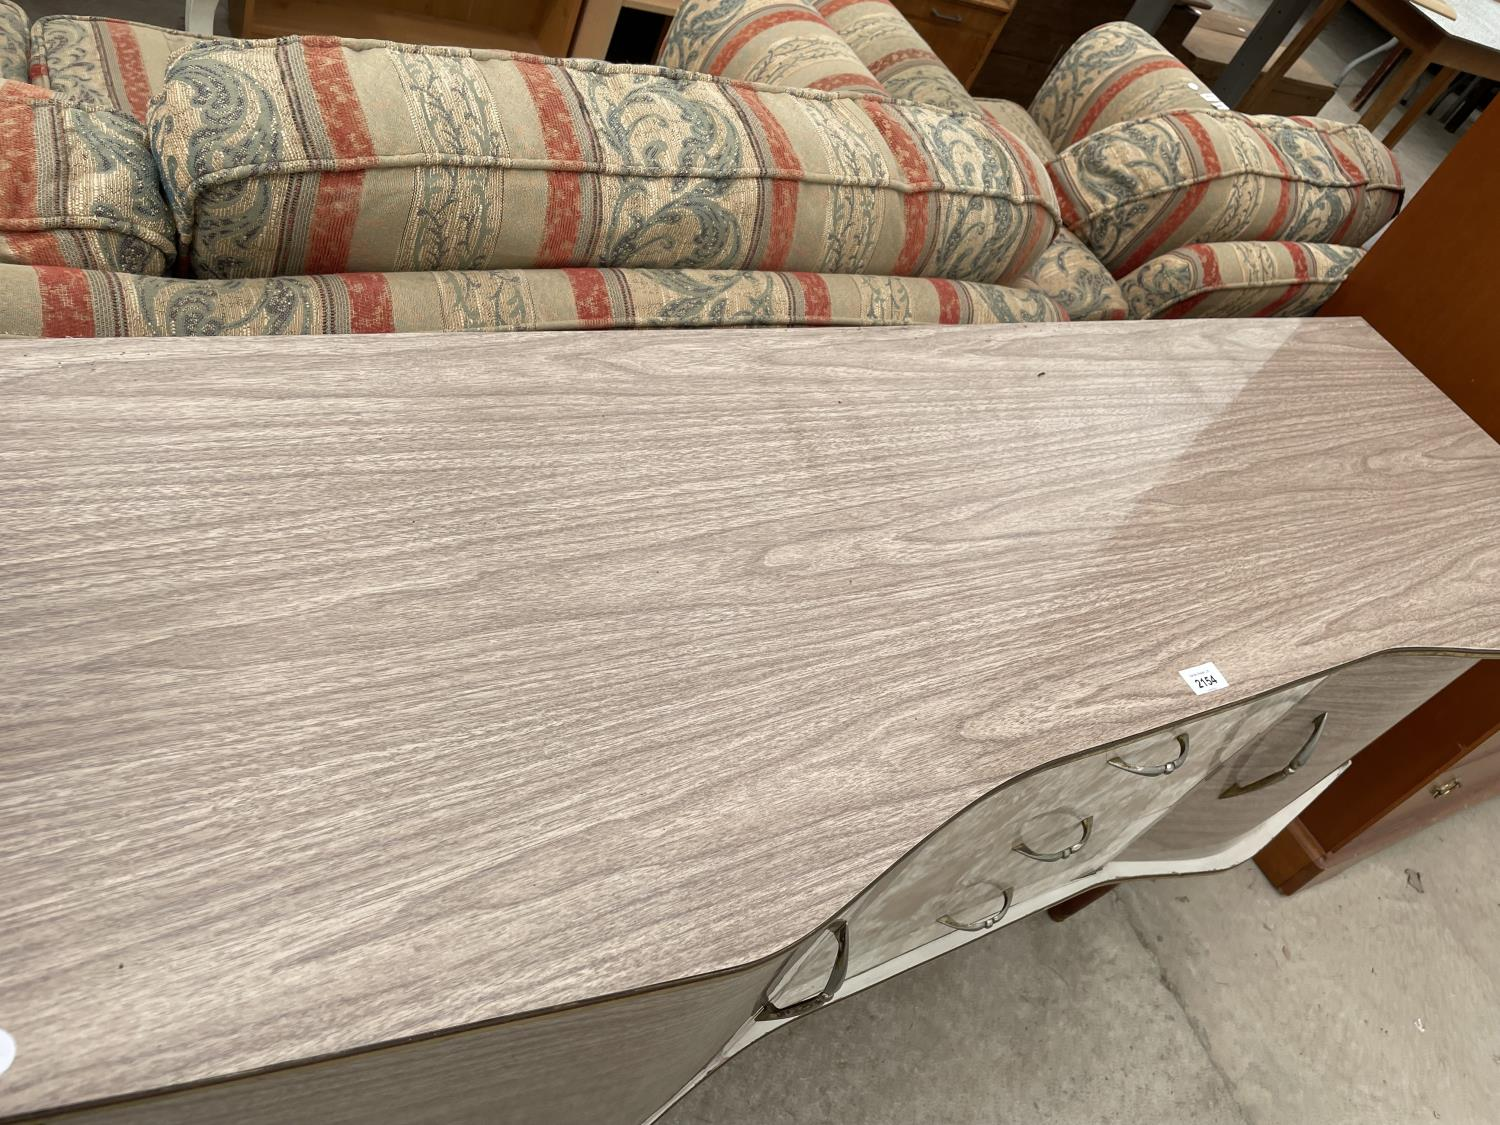 """A MID 20TH CENTURY CREAMY WANUT EFFECT SIDEBOARD, 60"""" WIDE - Image 2 of 5"""